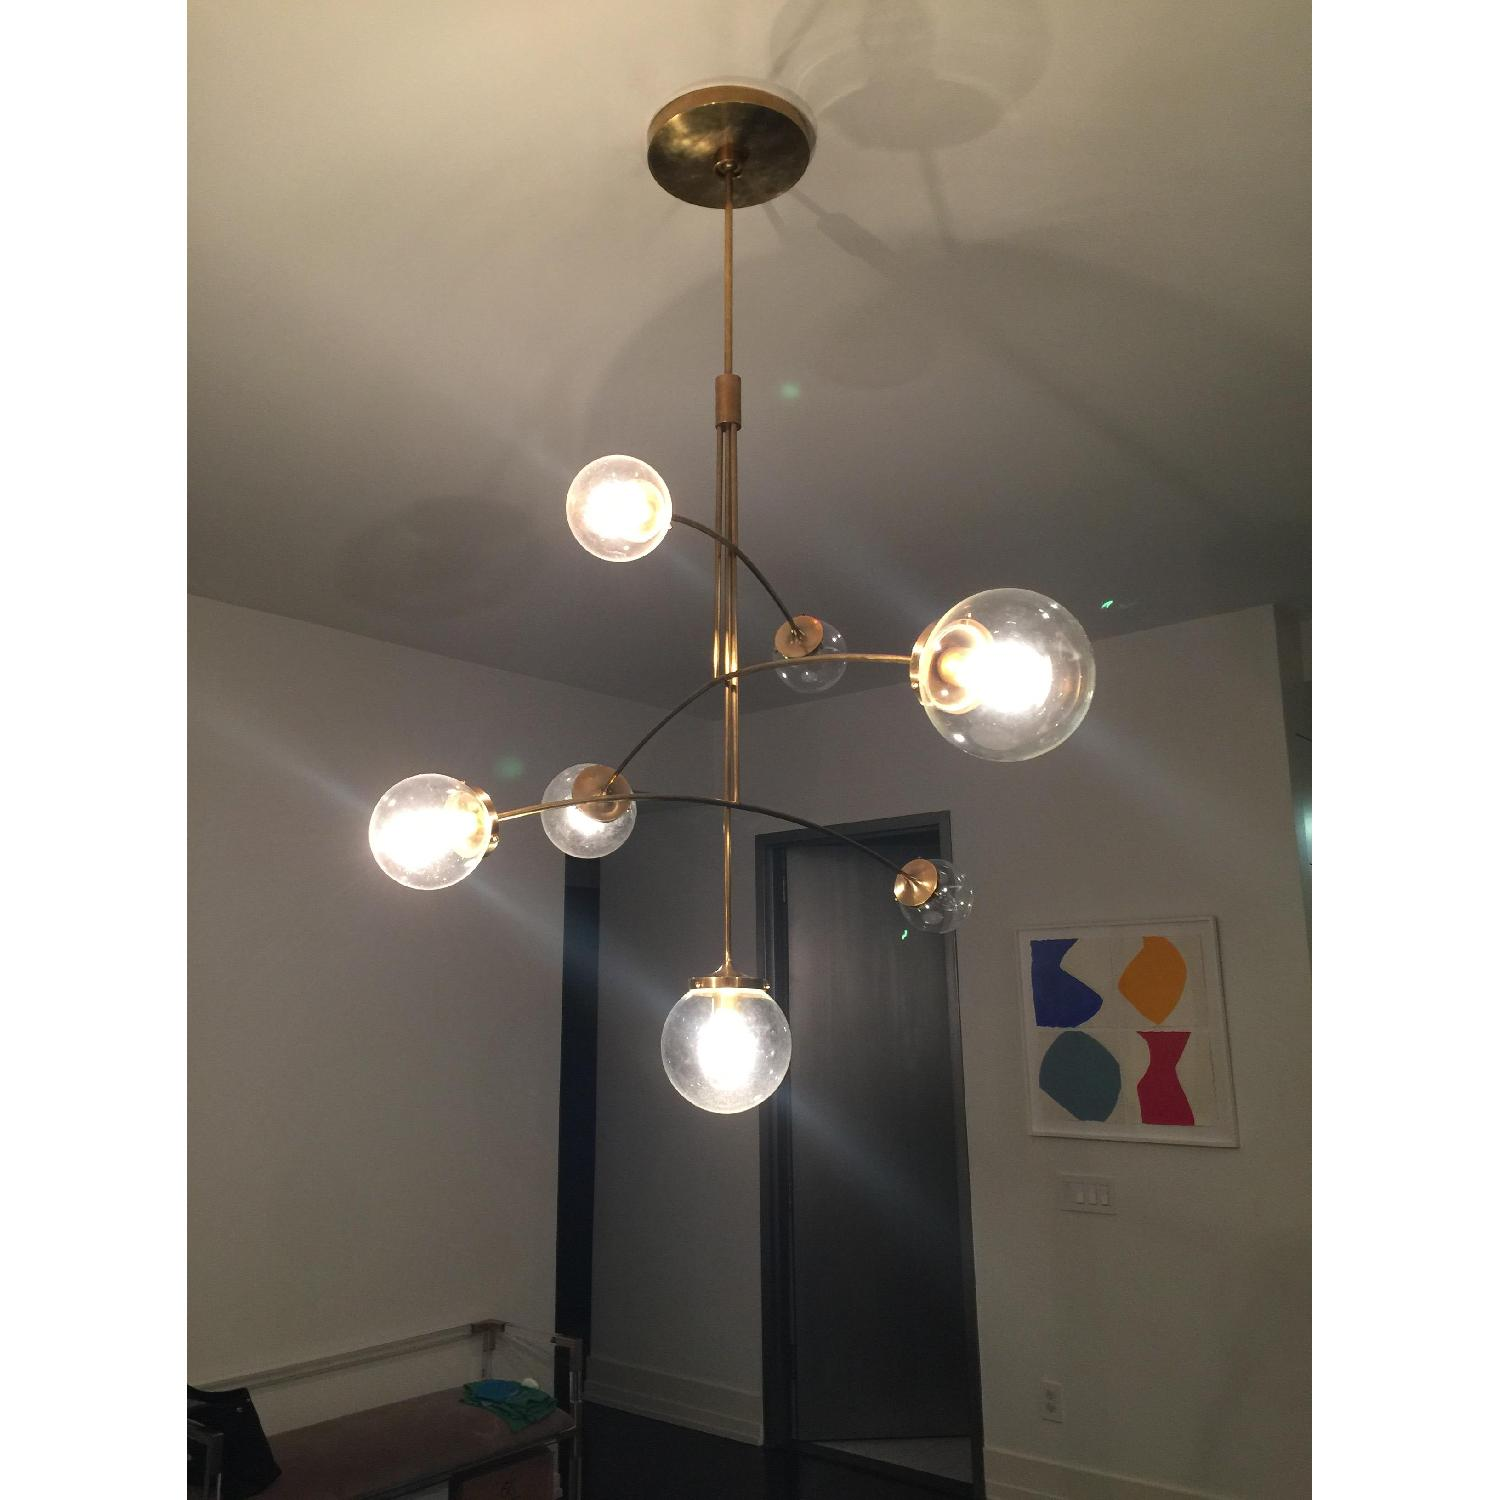 Kate Spade Prescott Large Mobile Chandelier in Soft Brass